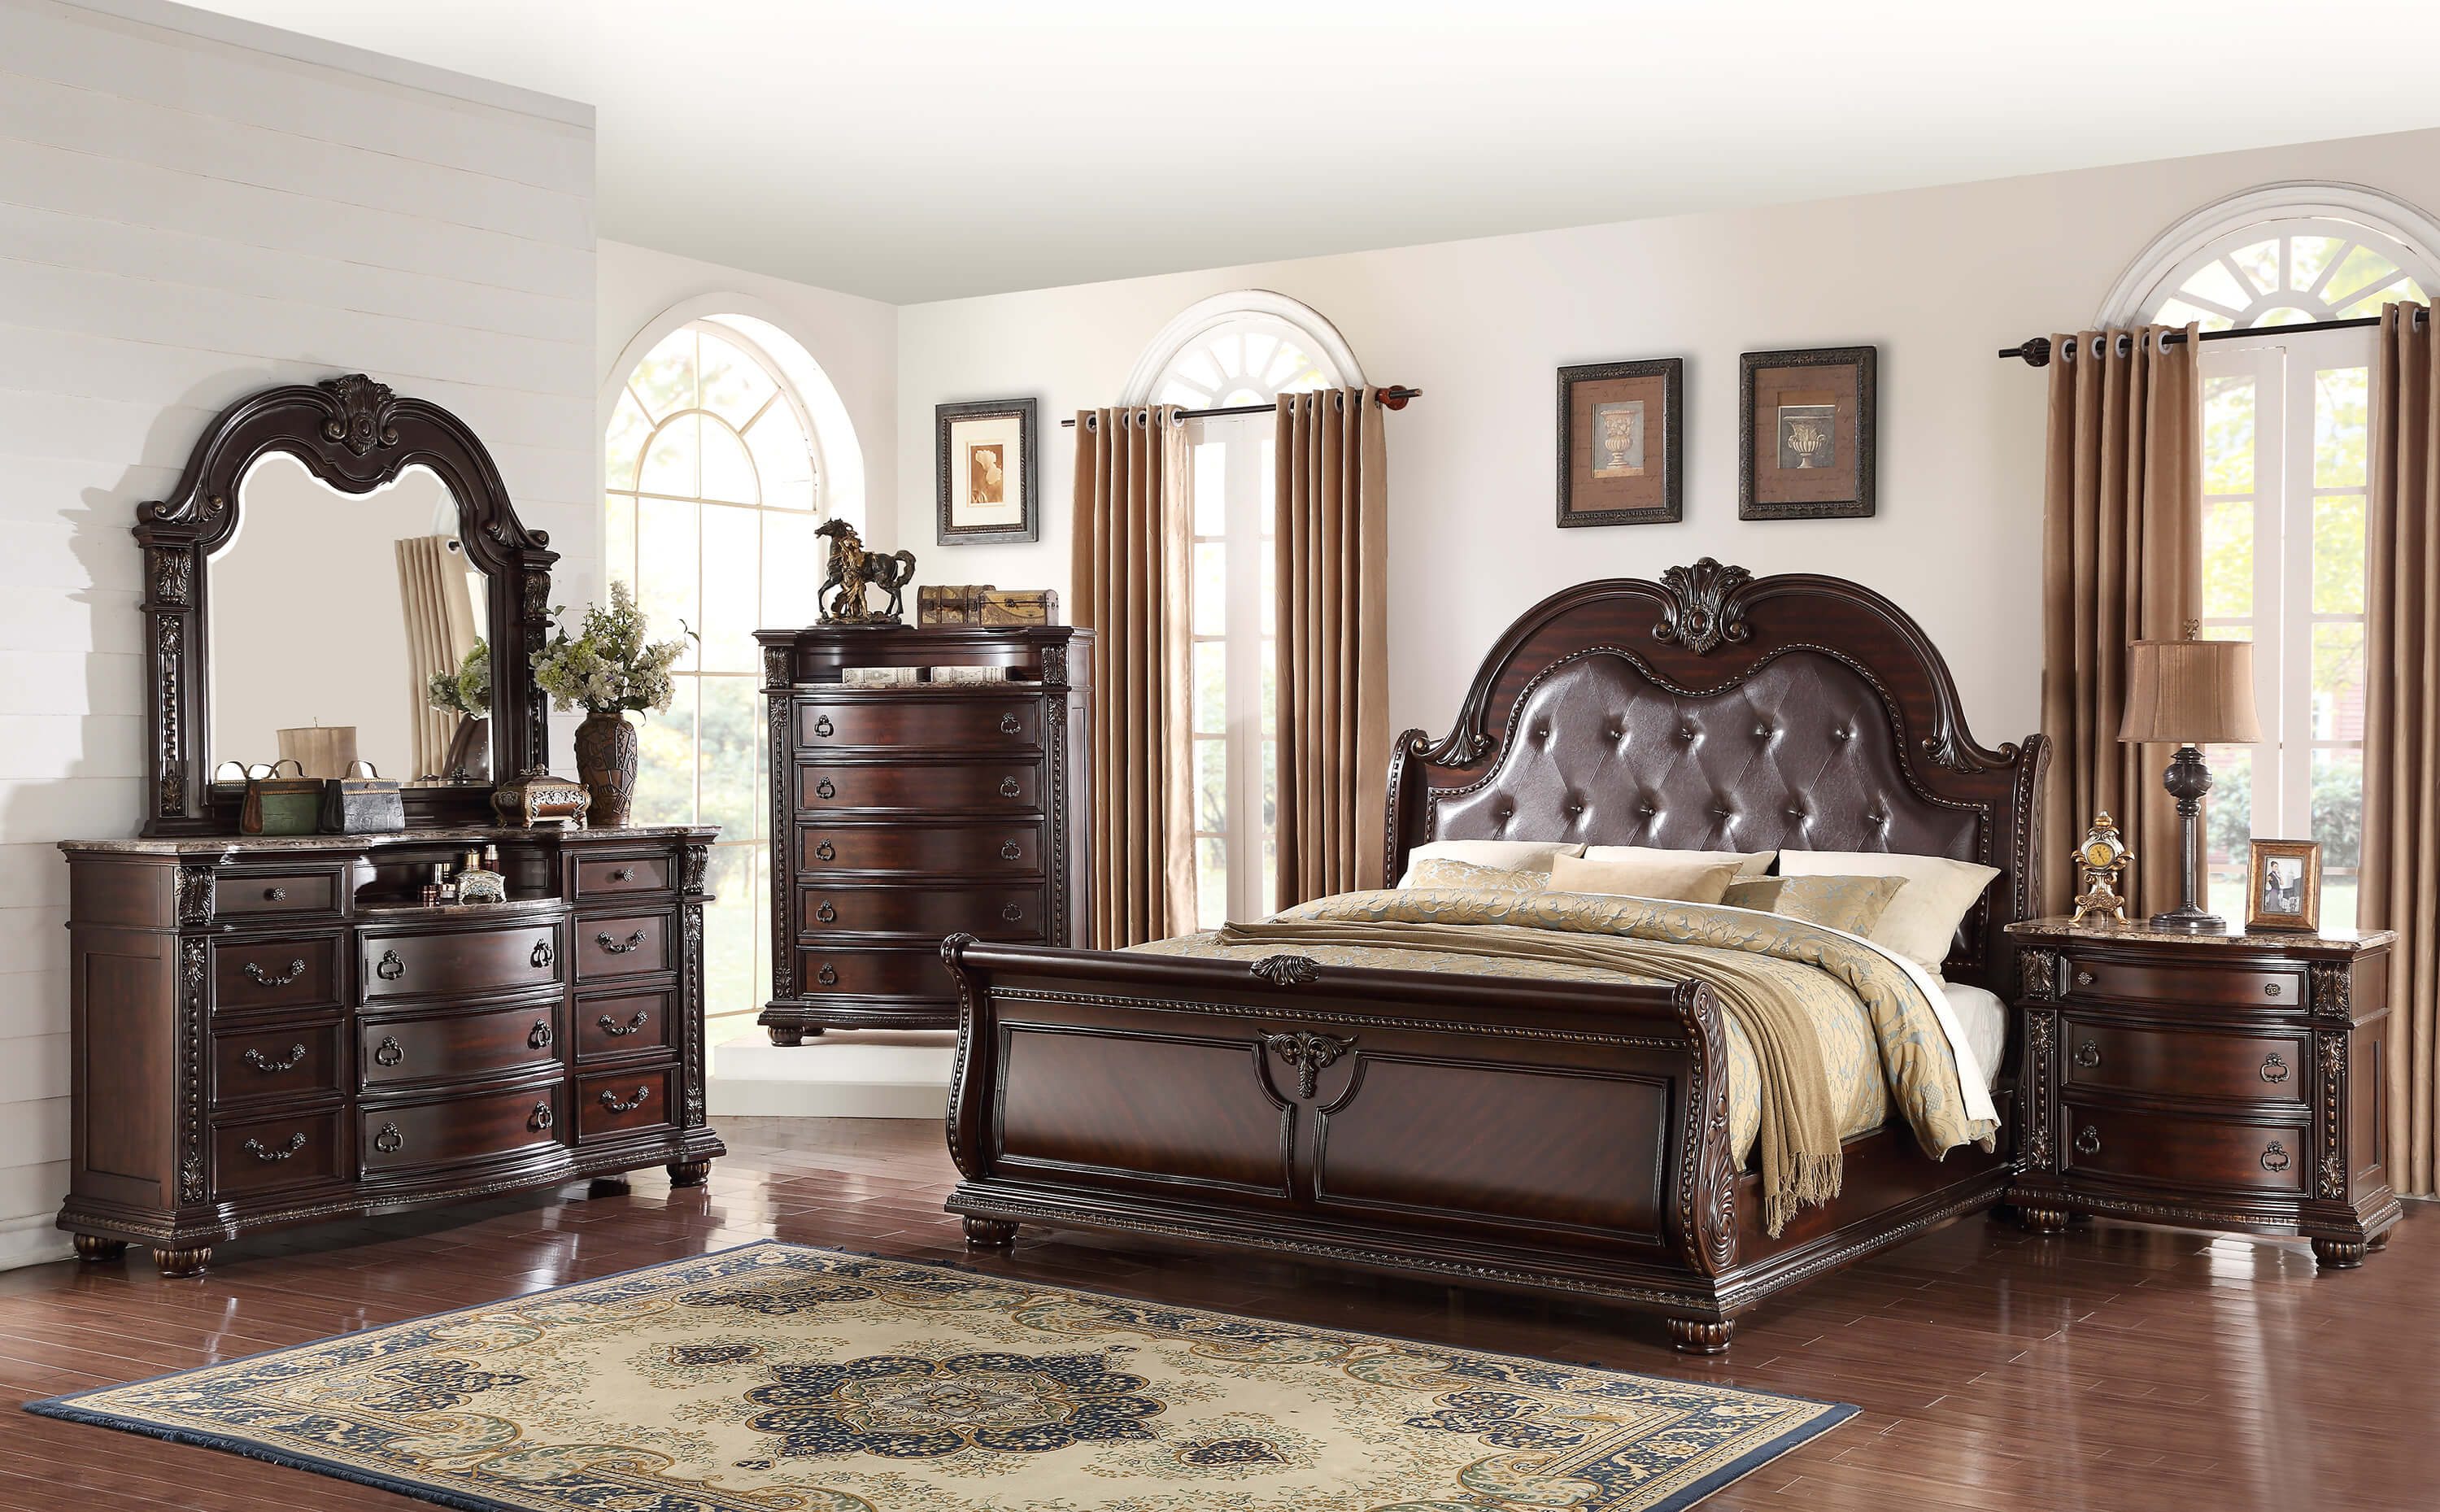 Stanley marble top bedroom set bedroom furniture sets for Best bedroom furniture